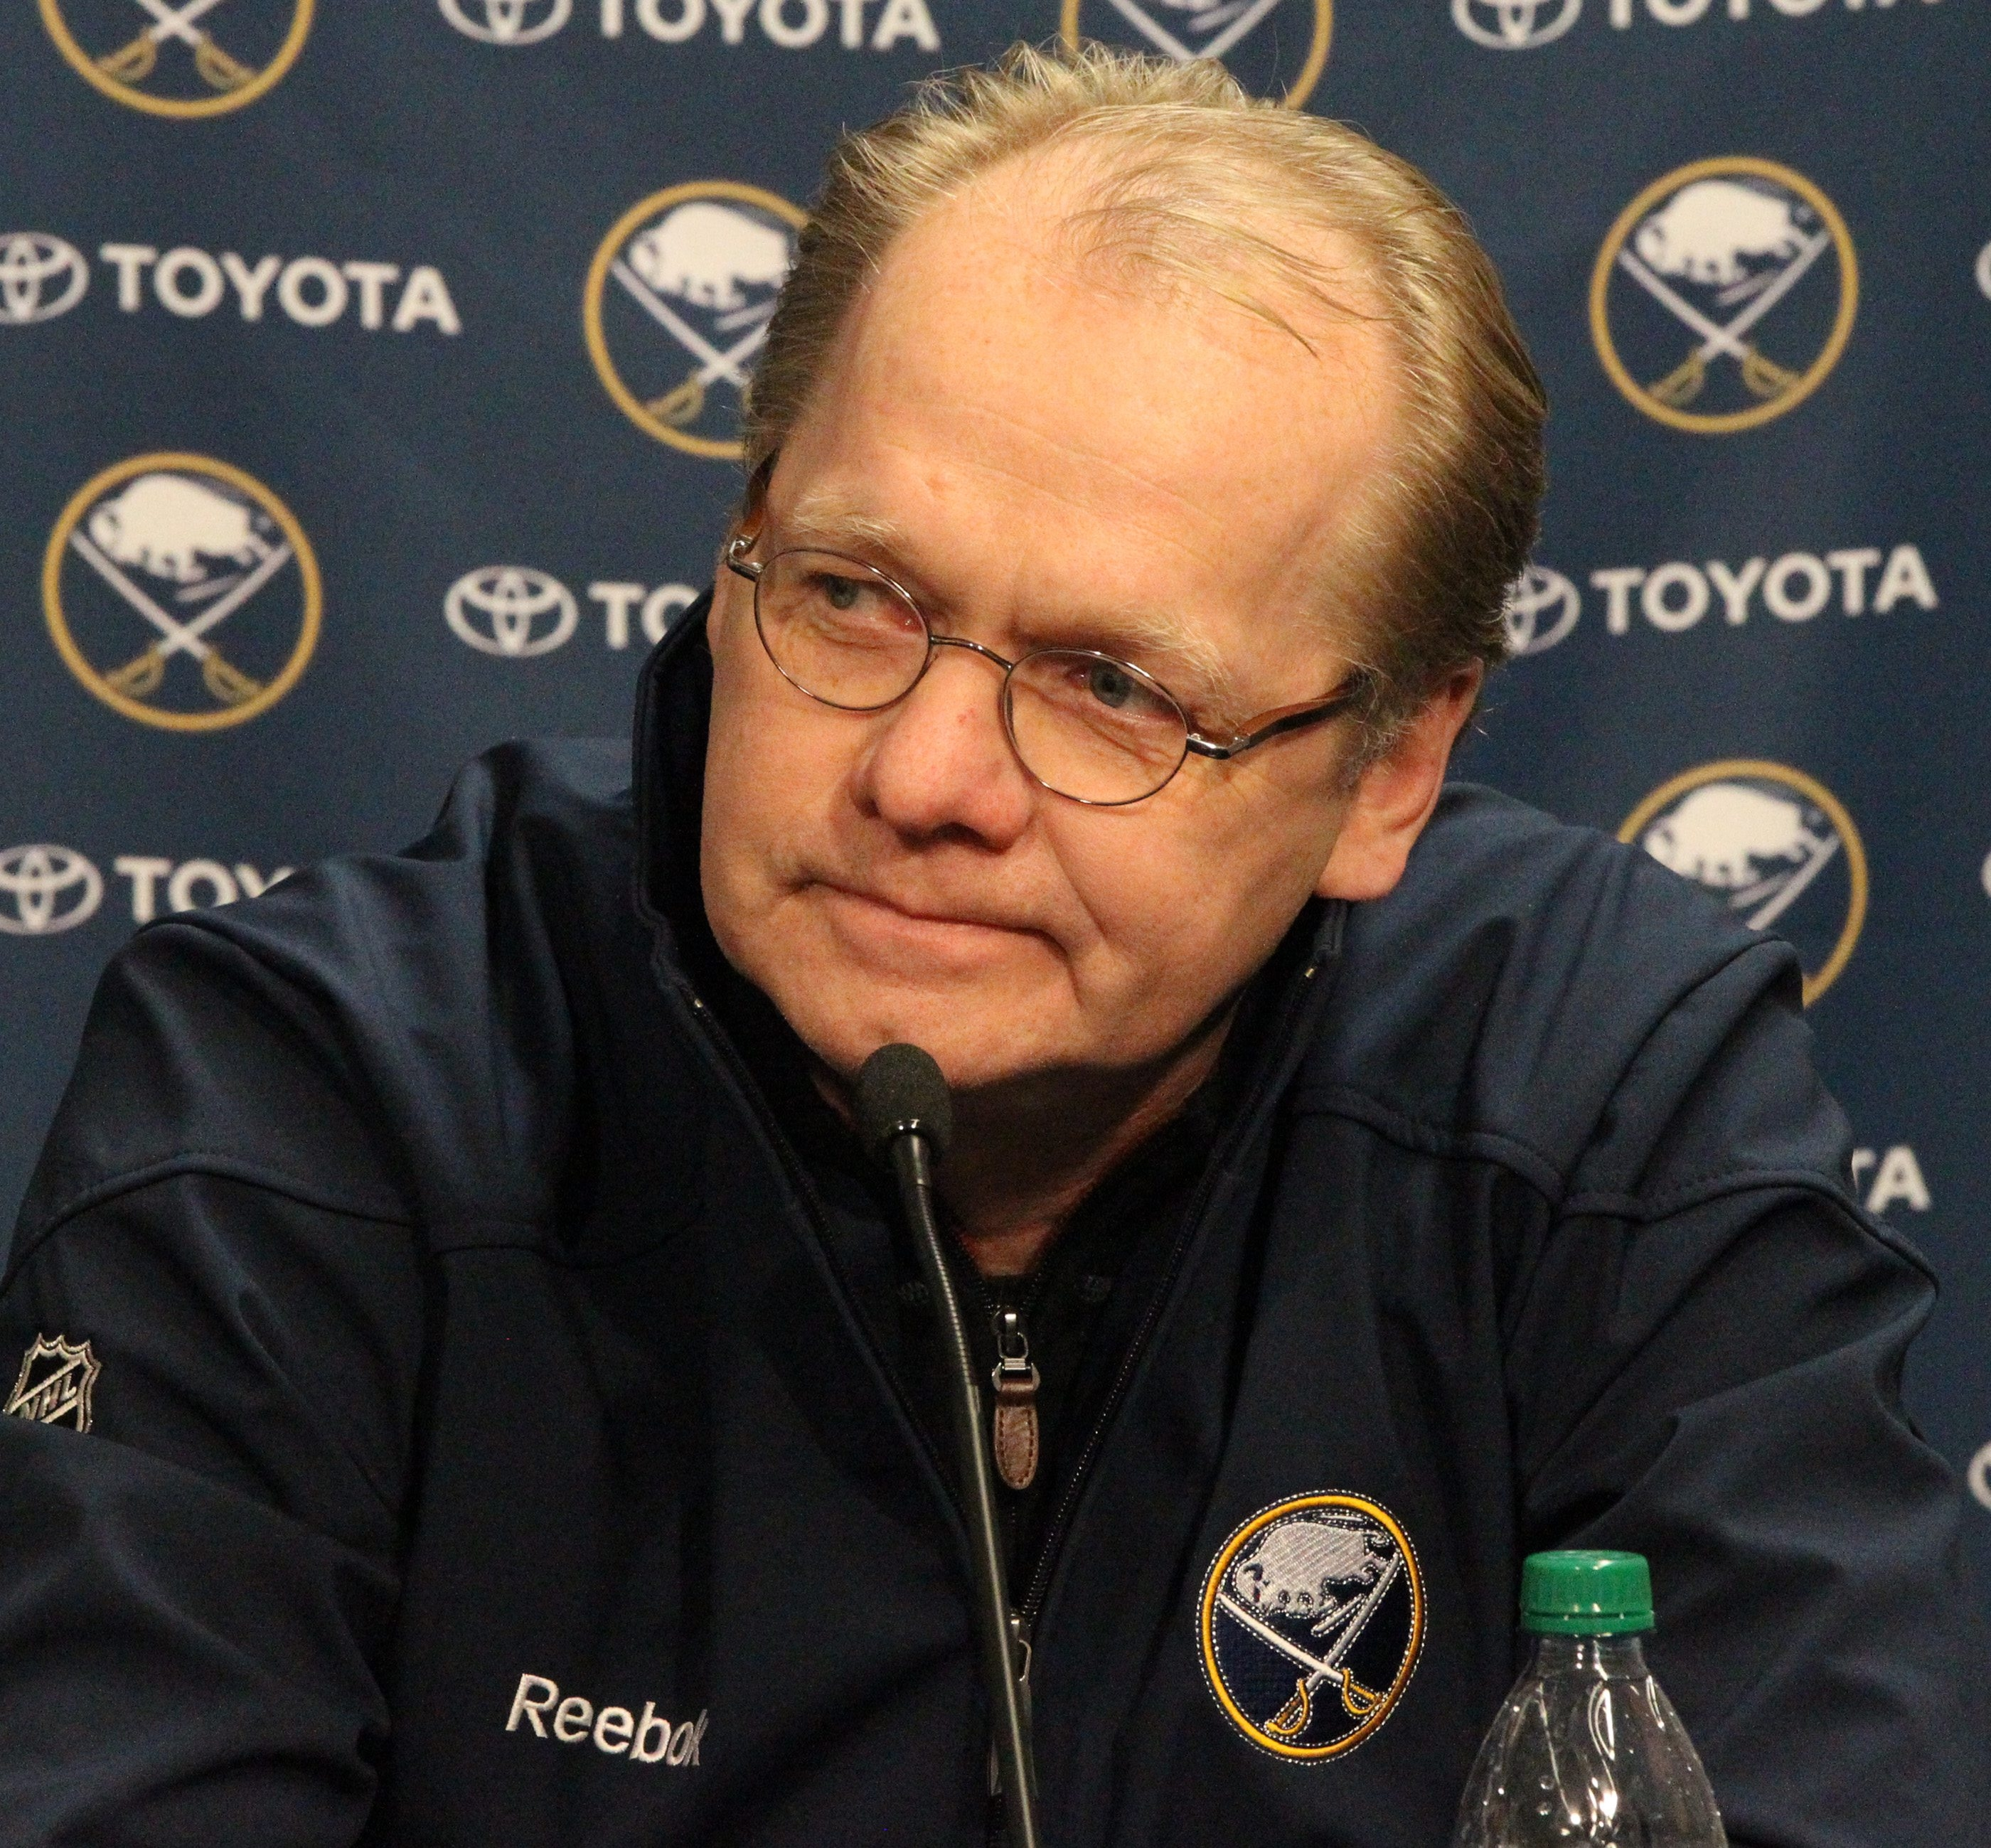 {McCoy Sports Sabres}Ted Black and Darcy Regier held a press conference to discuss the end of the NHL lockout  at the First Niagara Center on Tuesday, Jan. 8, 2013.  {Photo by James P. McCoy / Buffalo News}